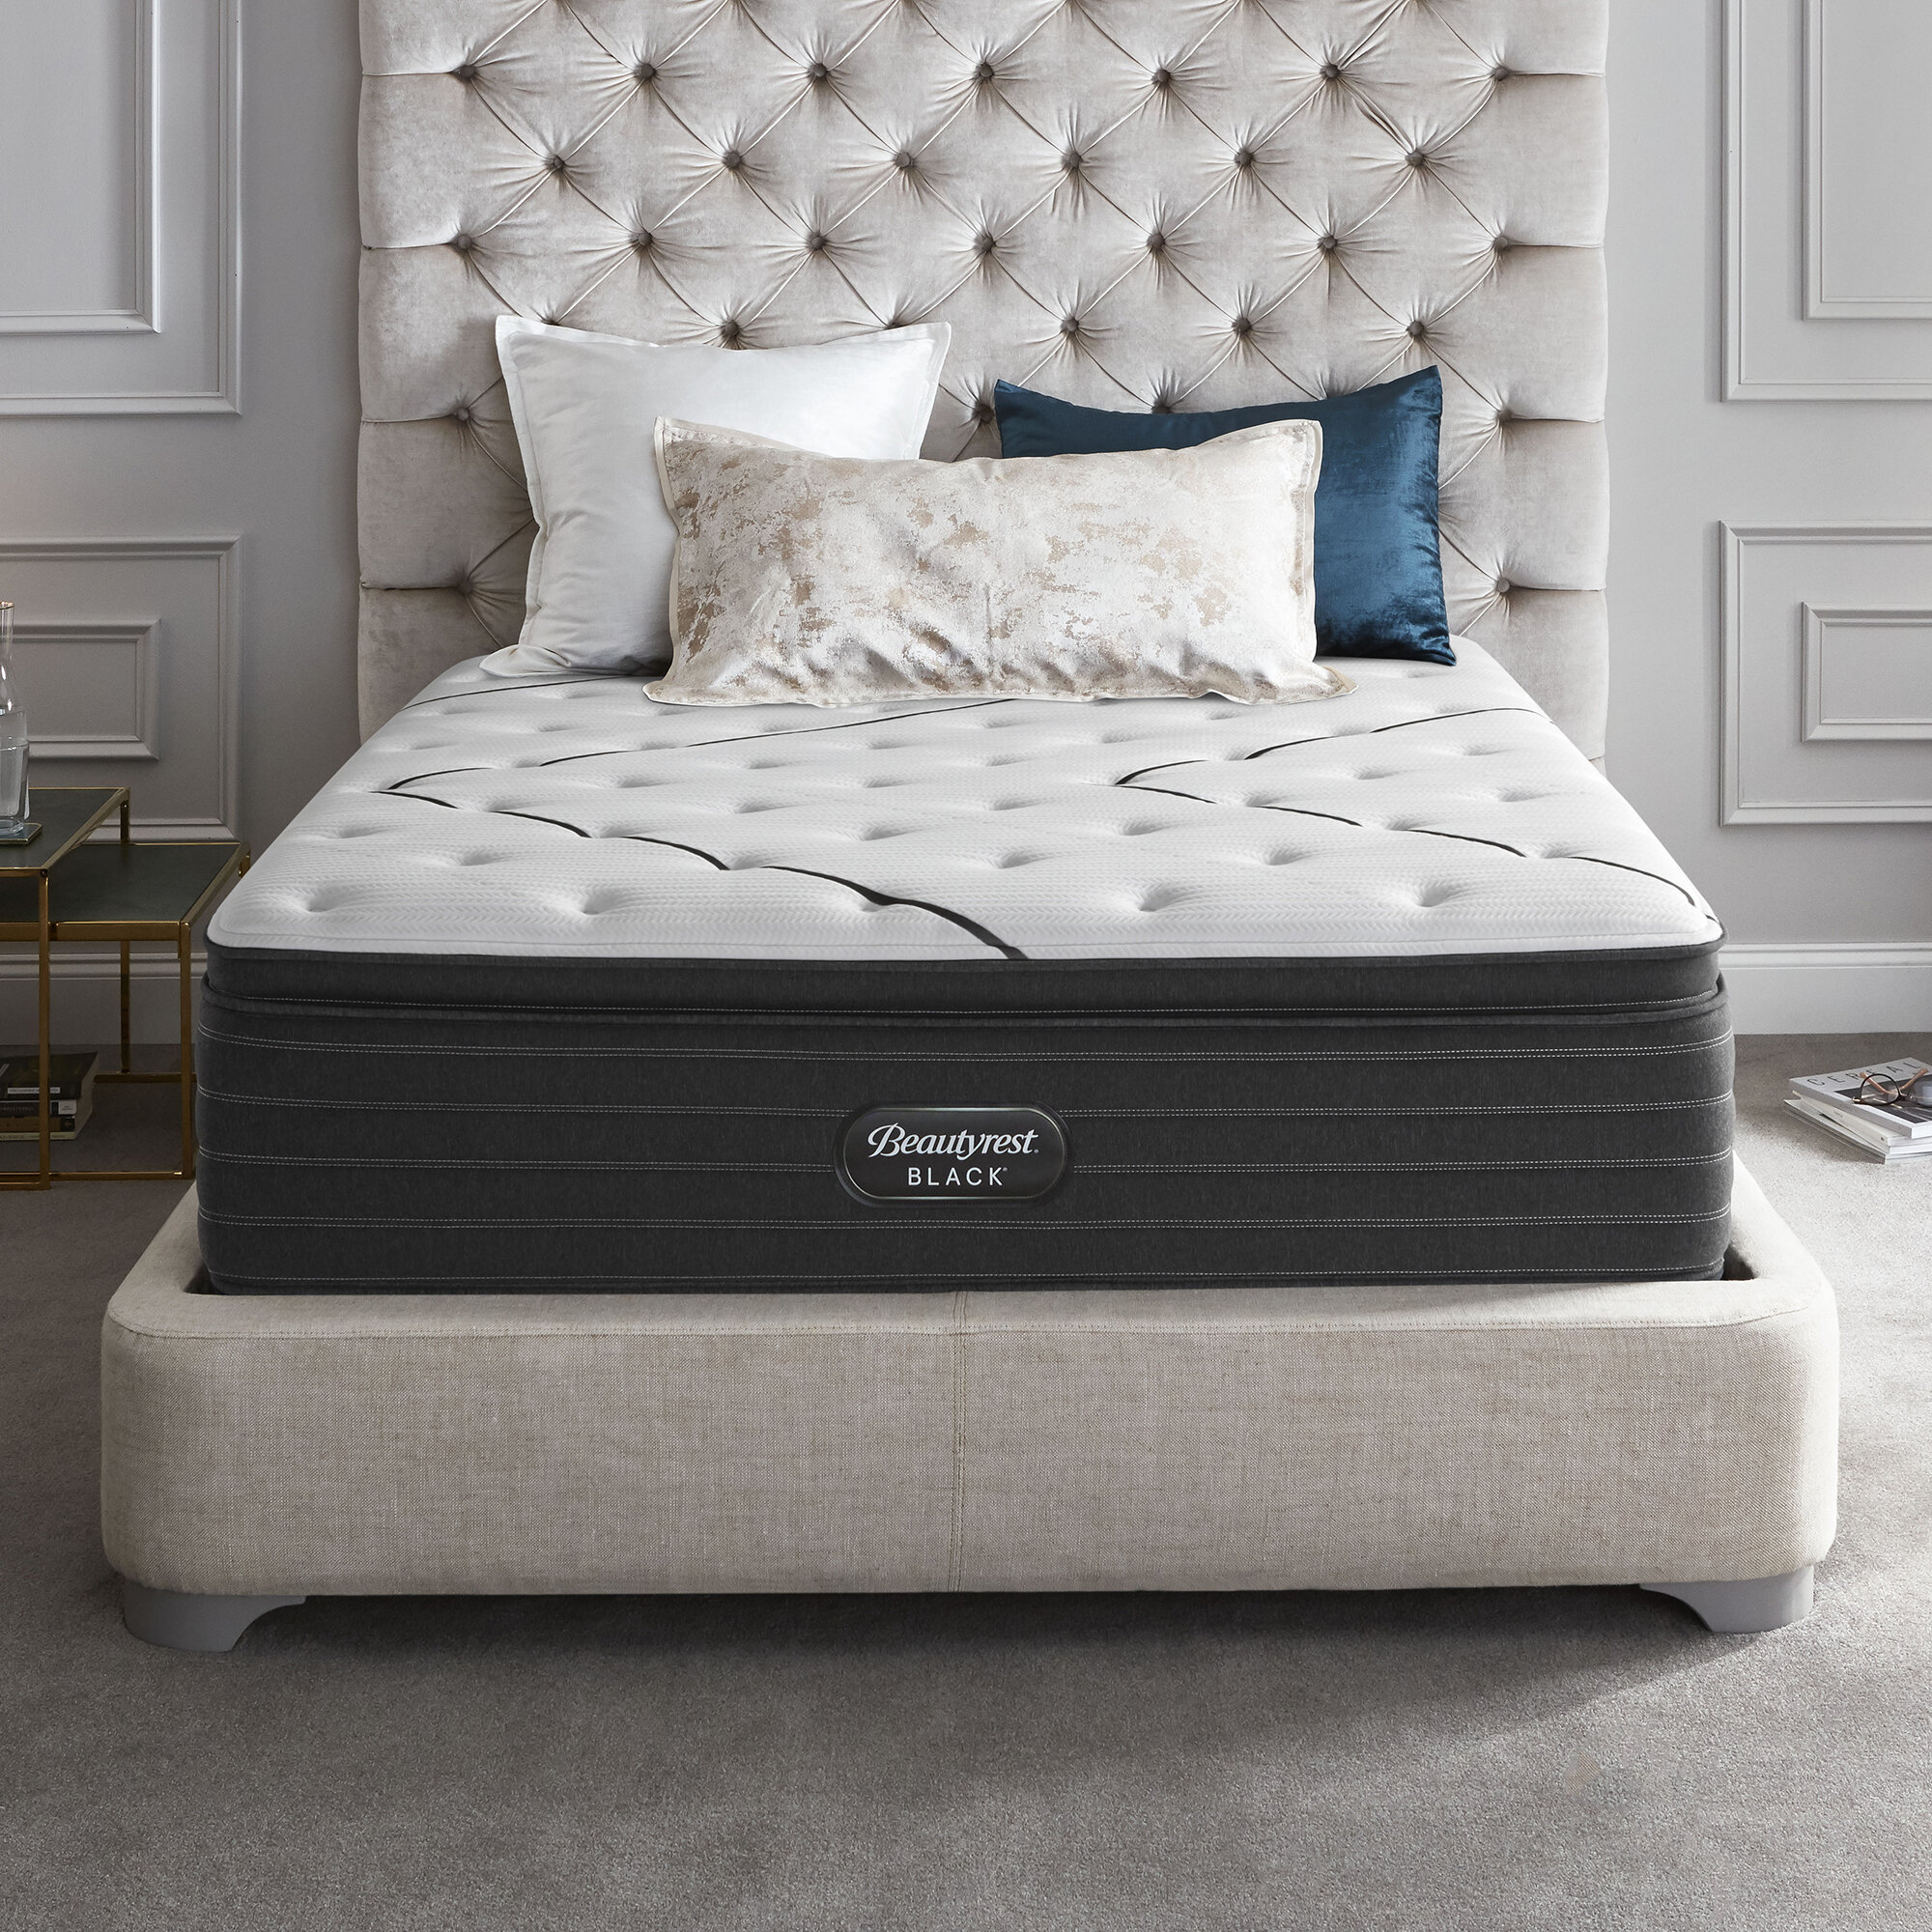 Beautyrest Black 16 Plush Pillow Top Mattress Wayfair